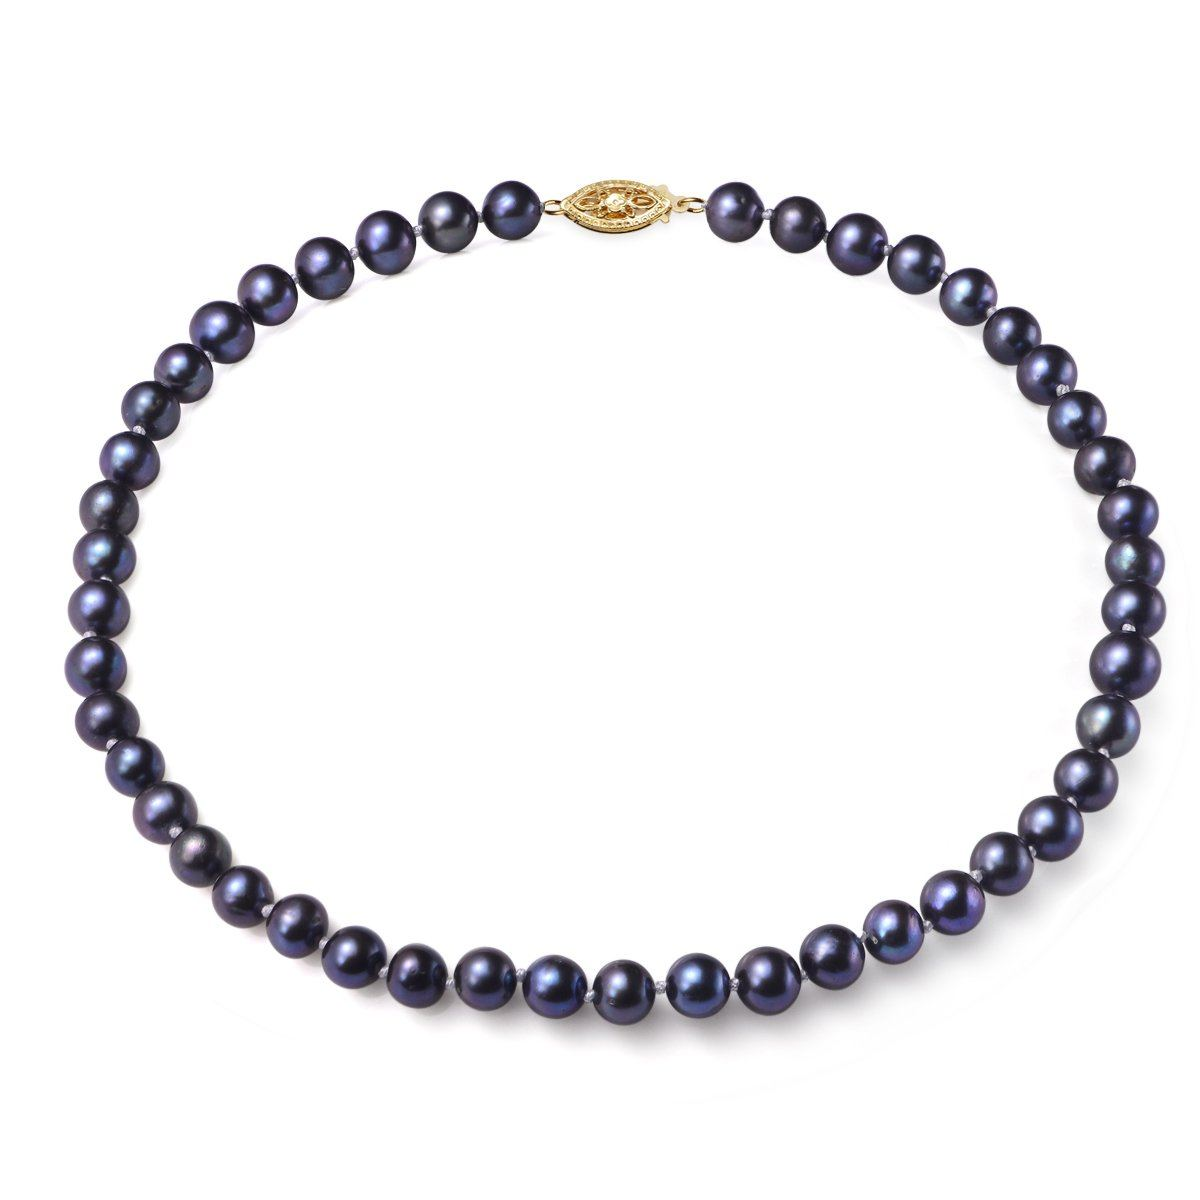 black, 7-8mm, aa, cultured freshwater pearl strand necklace with 14k solid yellow gold fish hook